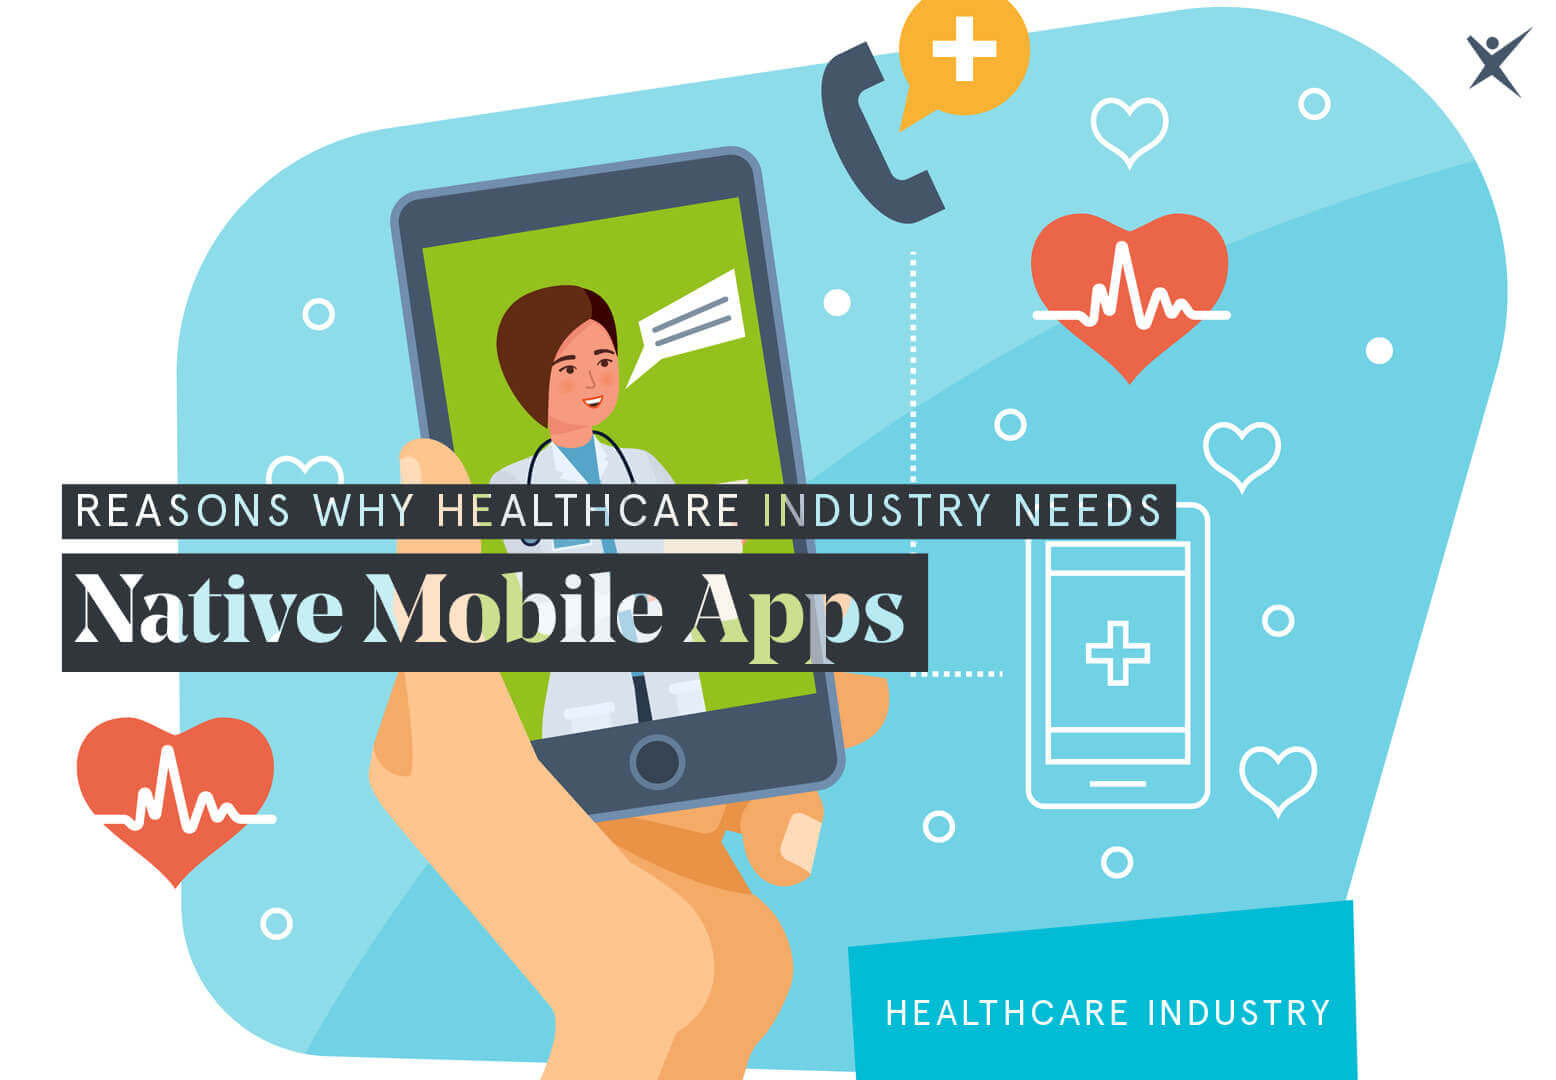 Reasons Why Healthcare Industry Needs Native Mobile Apps